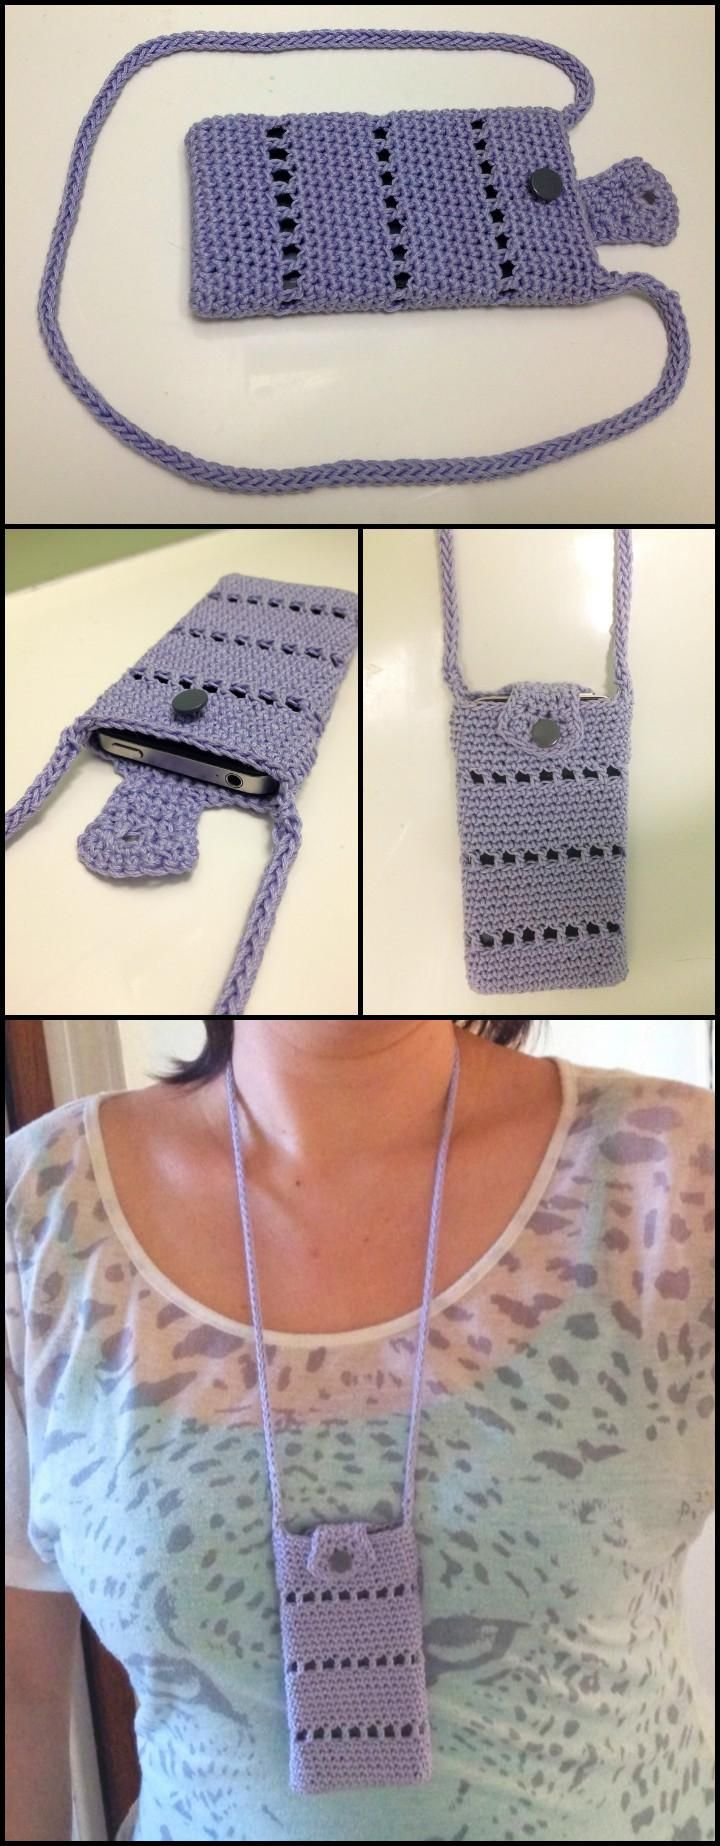 Best 25 crochet phone cases ideas on pinterest crochet phone 50 free crochet phone case patterns page 3 of 5 bankloansurffo Image collections